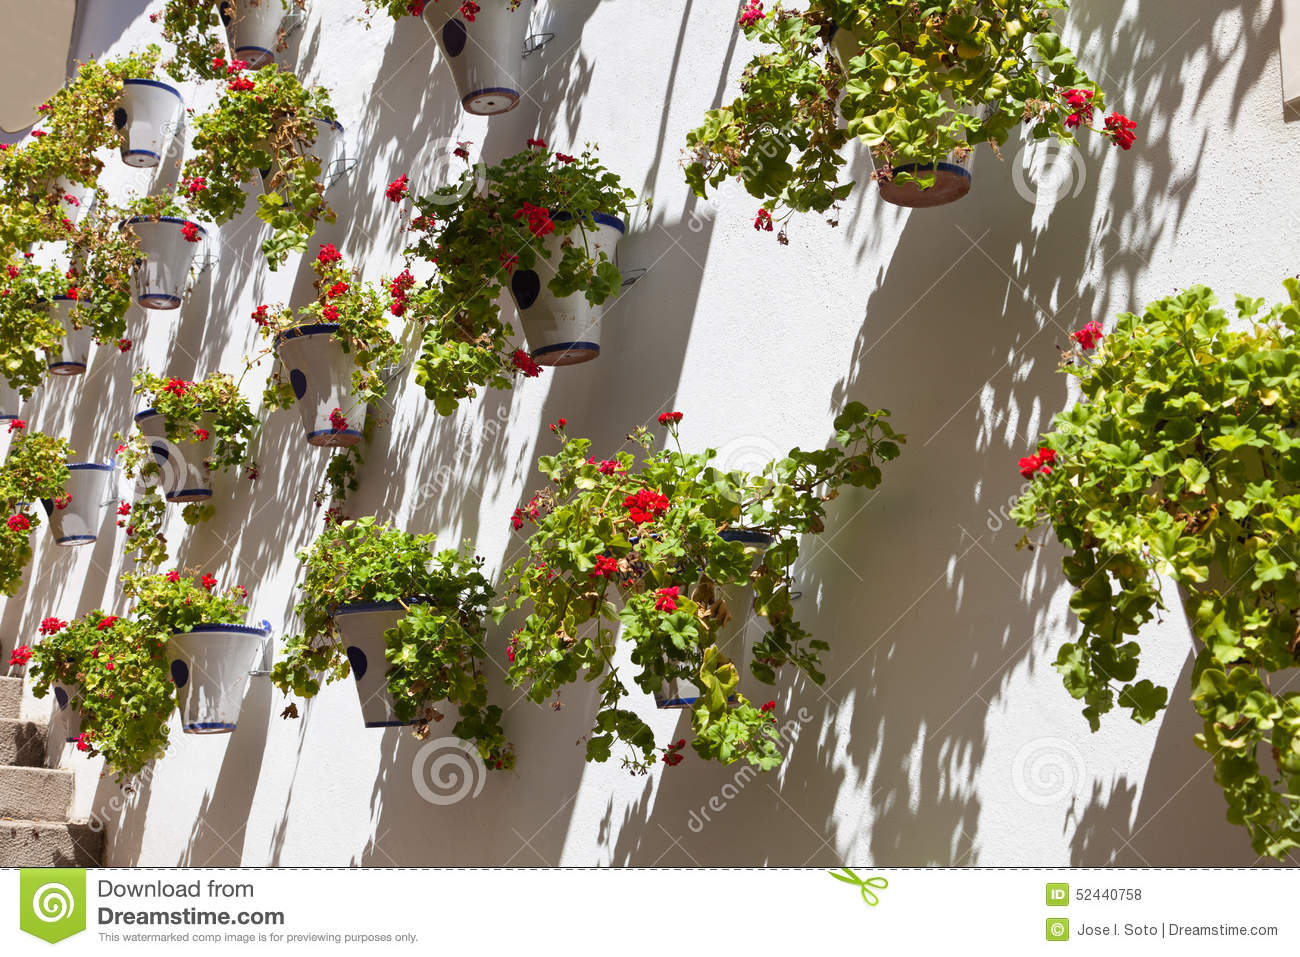 Pots of geraniums in cordoba spain stock photo image 52440758 - Care geraniums flourishing balcony porch ...